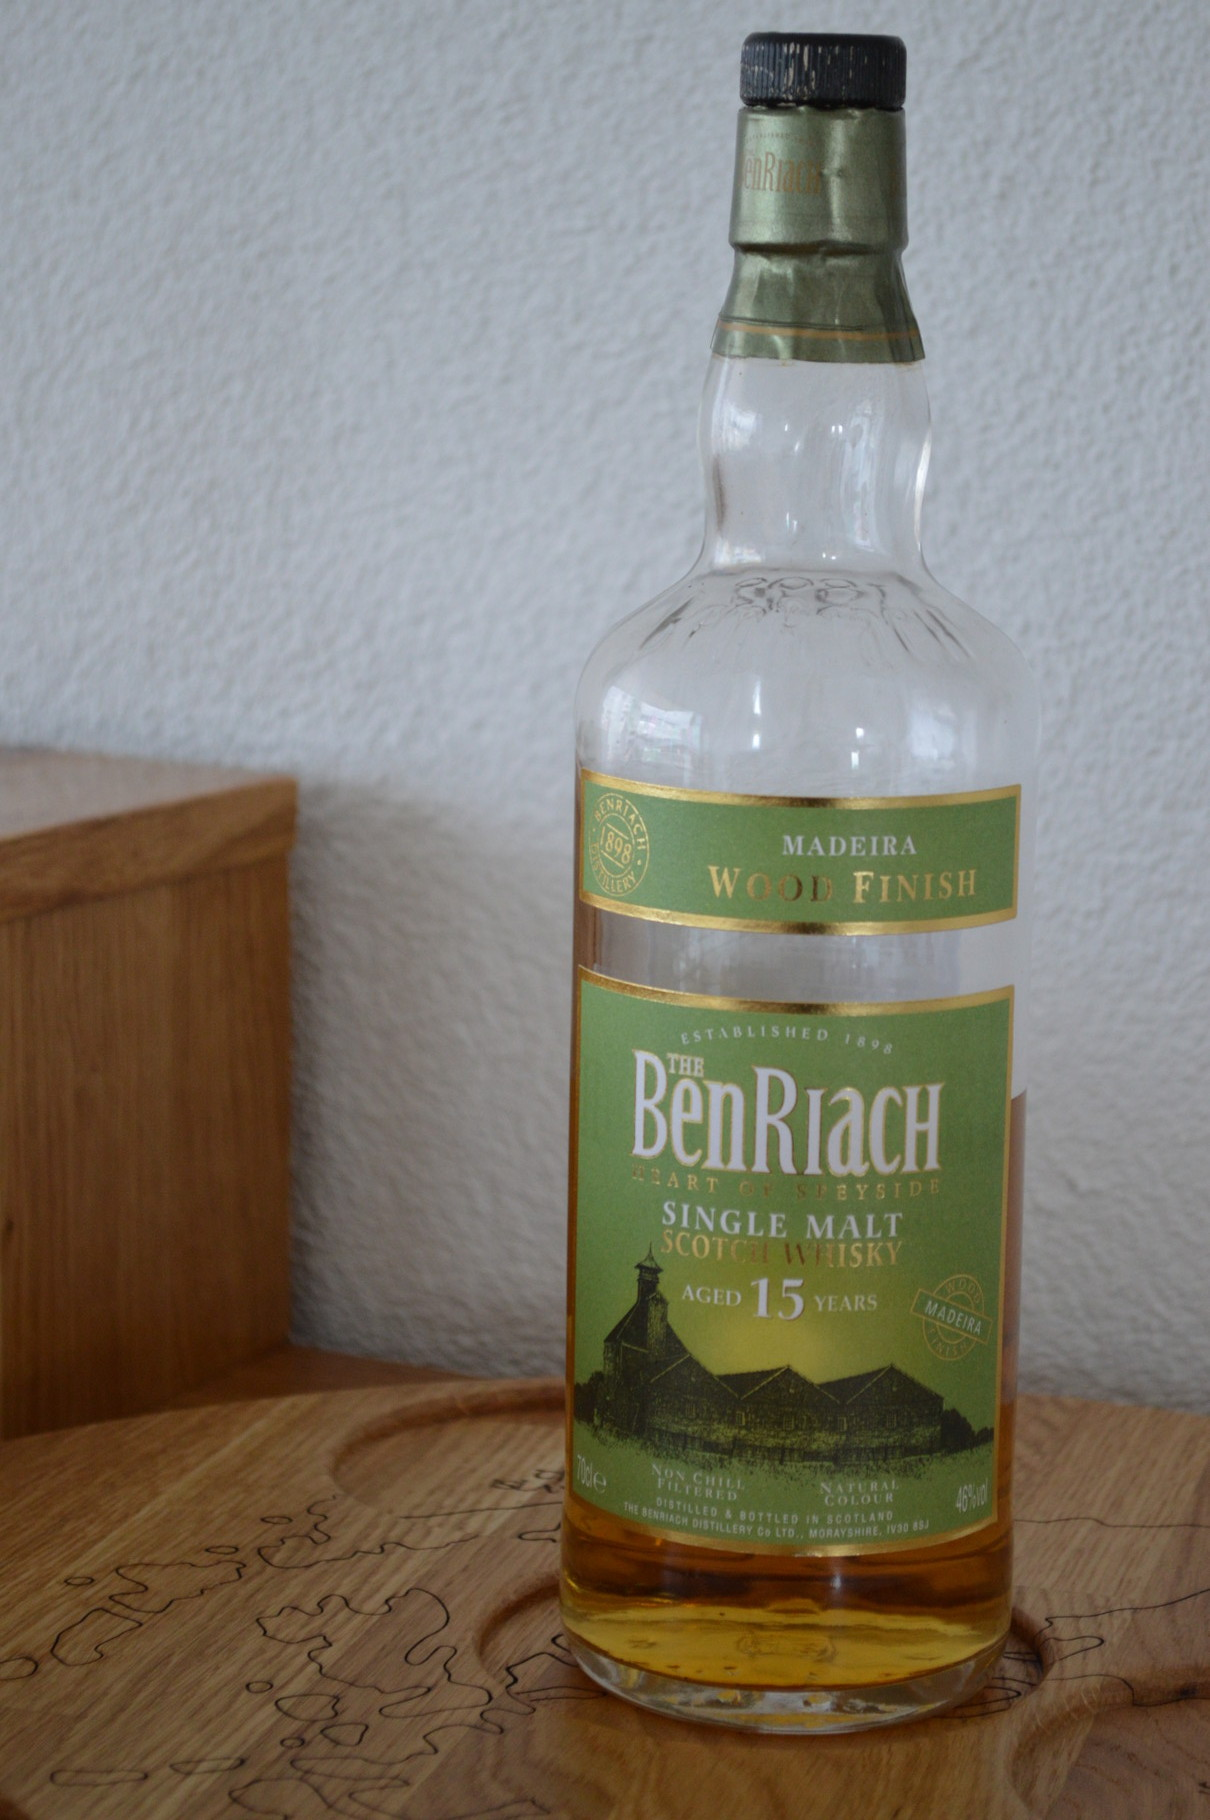 SPEYSIDE - BenRiach* - Aged: 15 years - Bottler: Original - 70cl - 46% - Madeira Finish